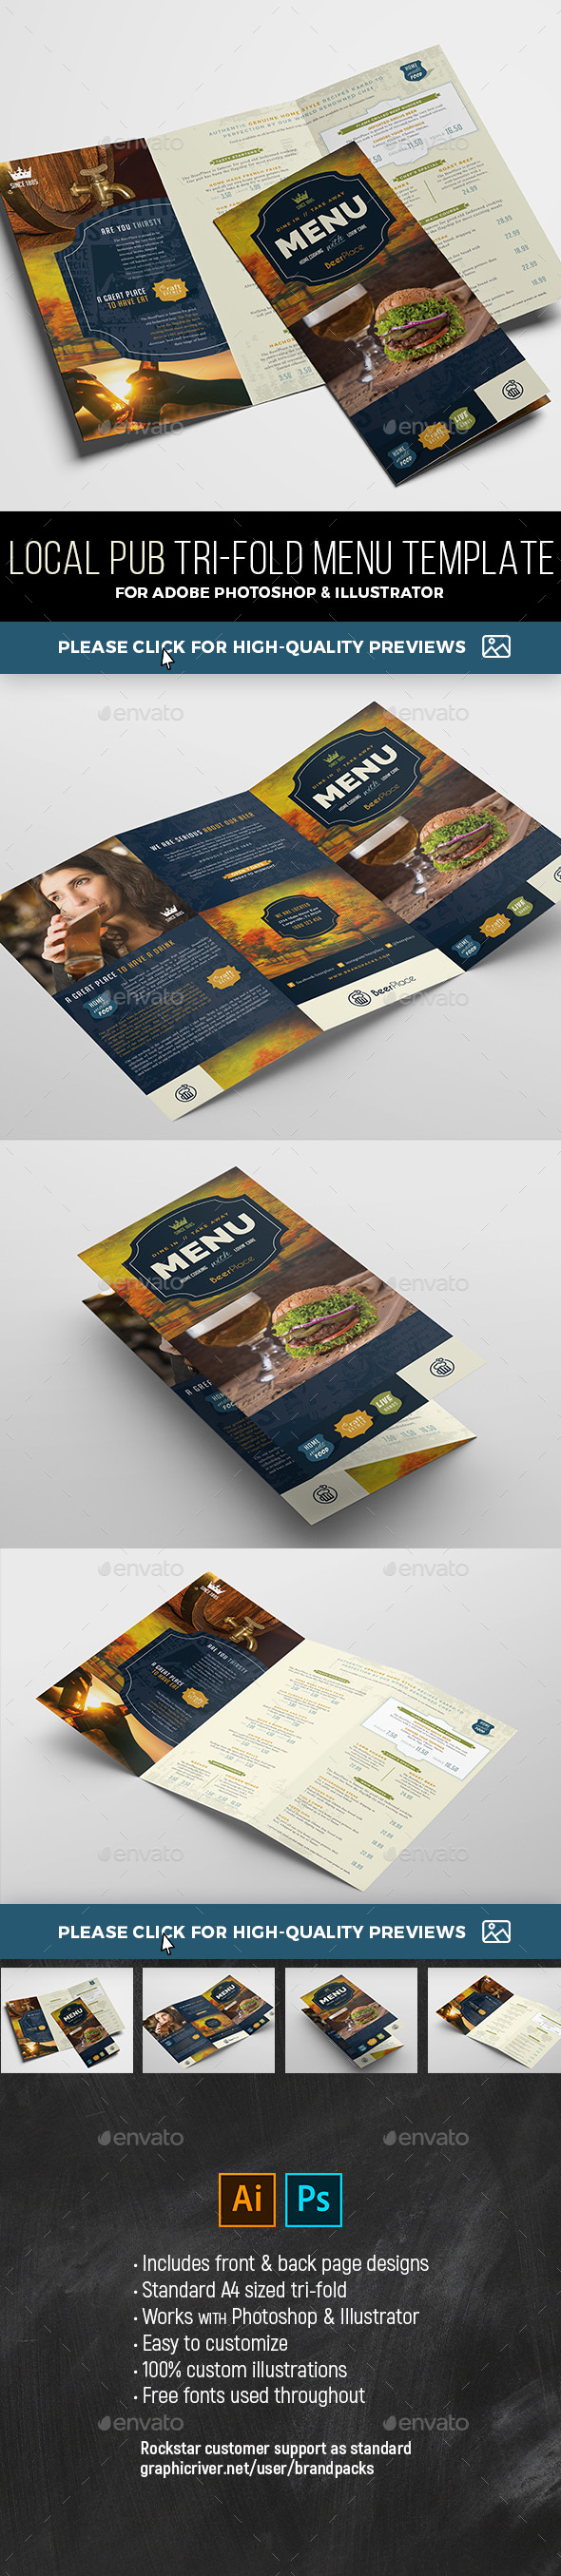 Tri-Fold Pub Menu Template - Restaurant Flyers